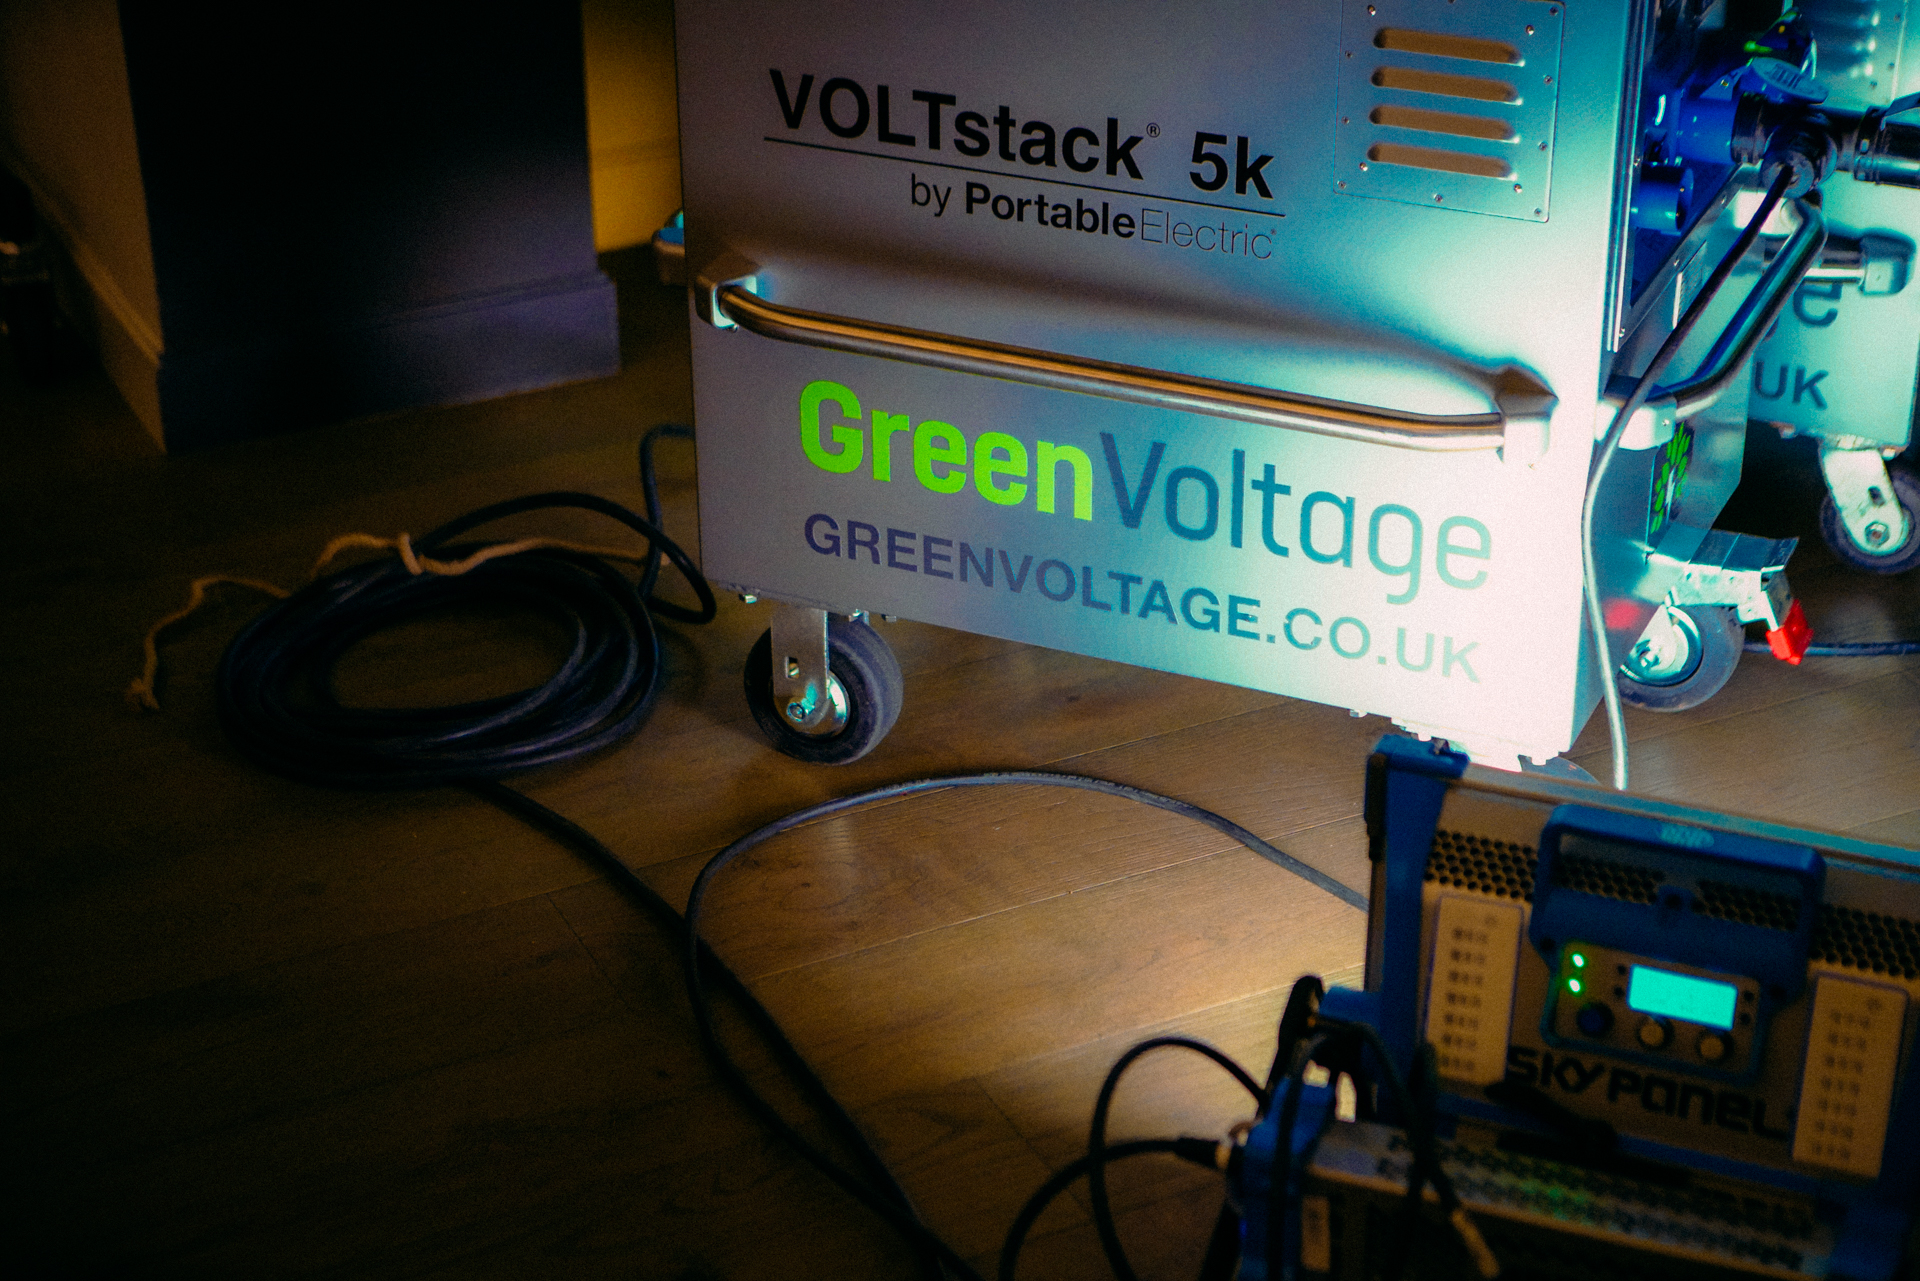 A VOLTstack 5k in action